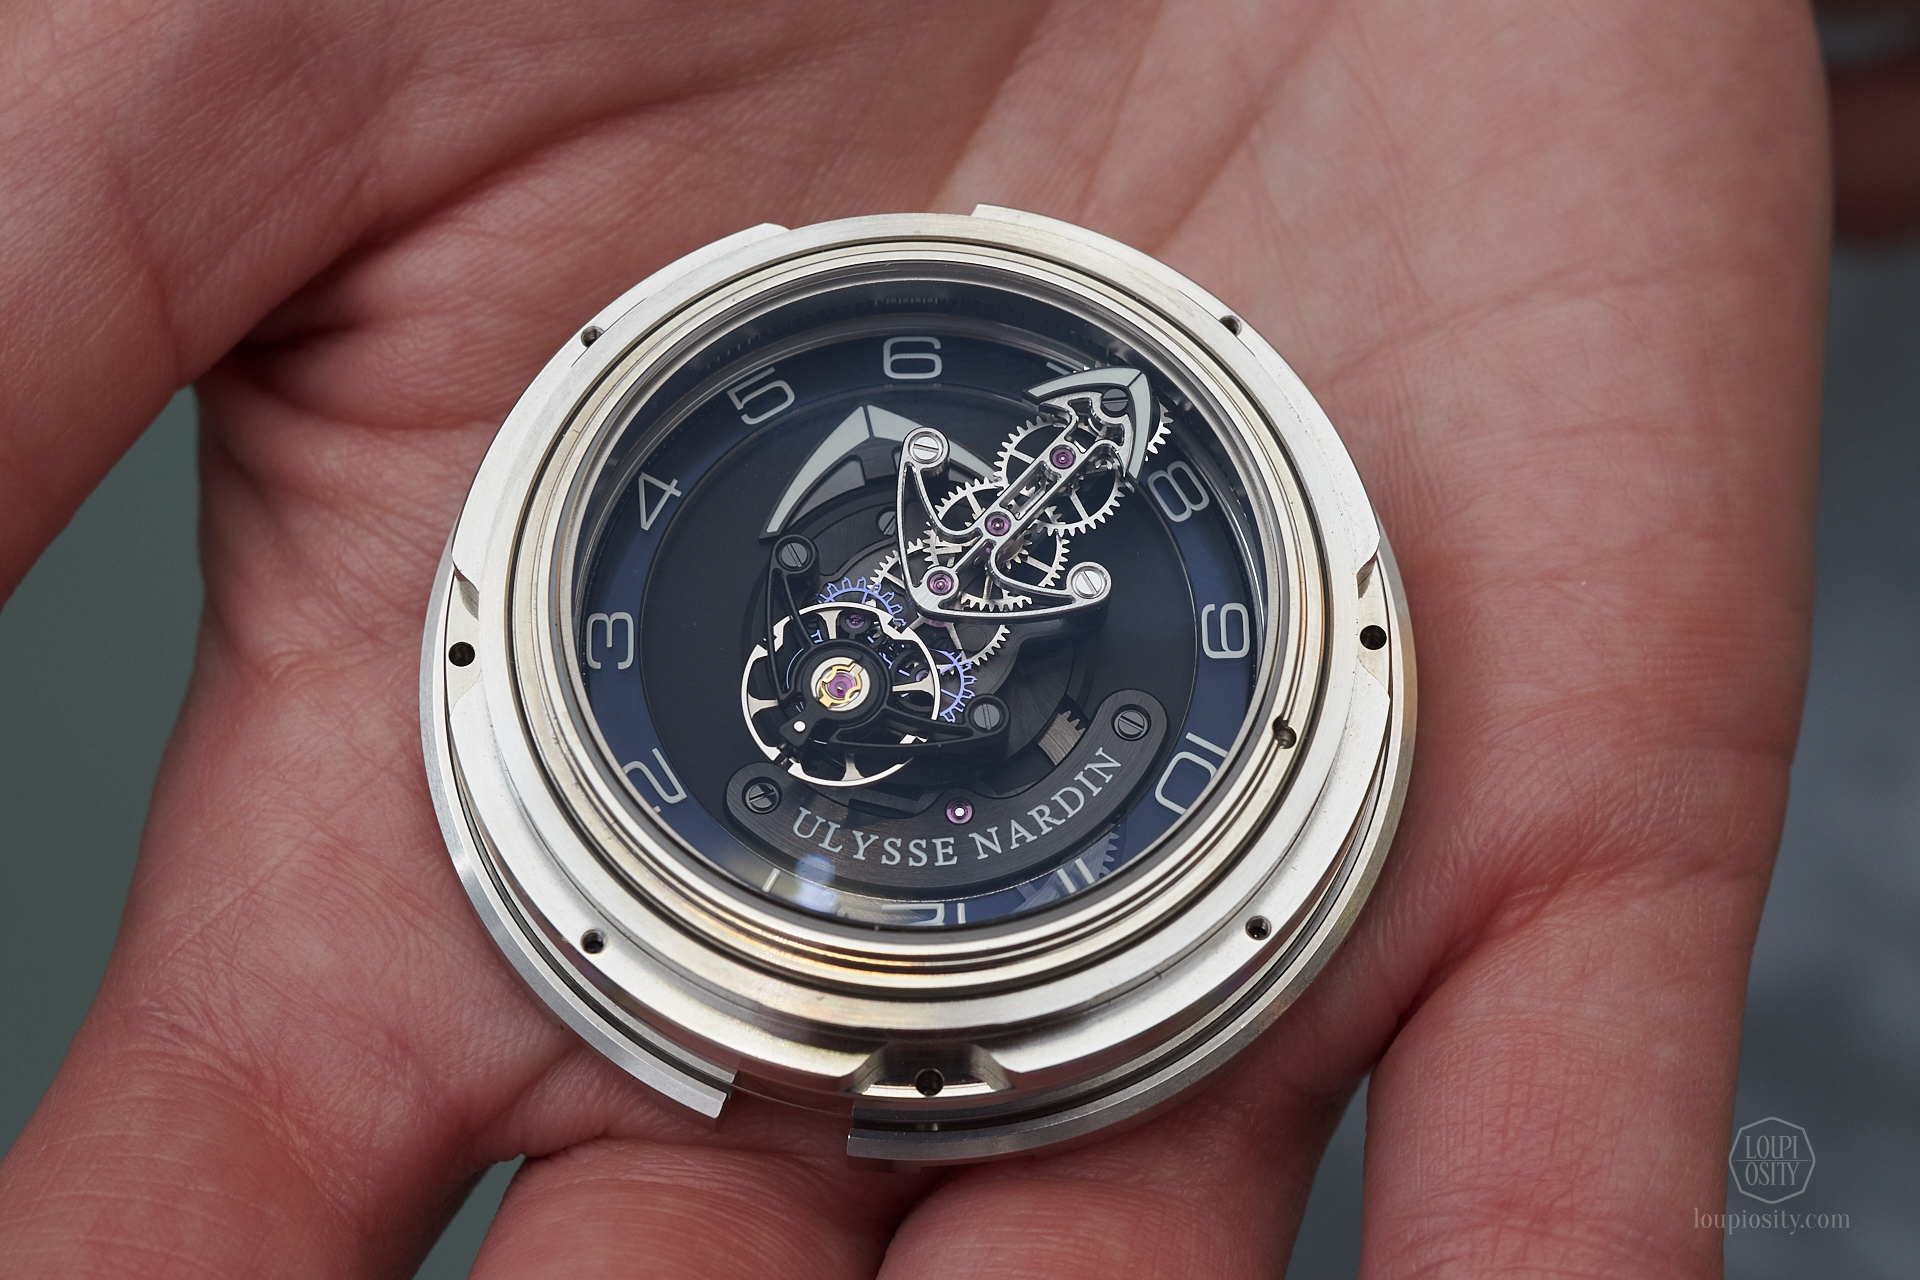 Ulysse Nardin Freak assembled